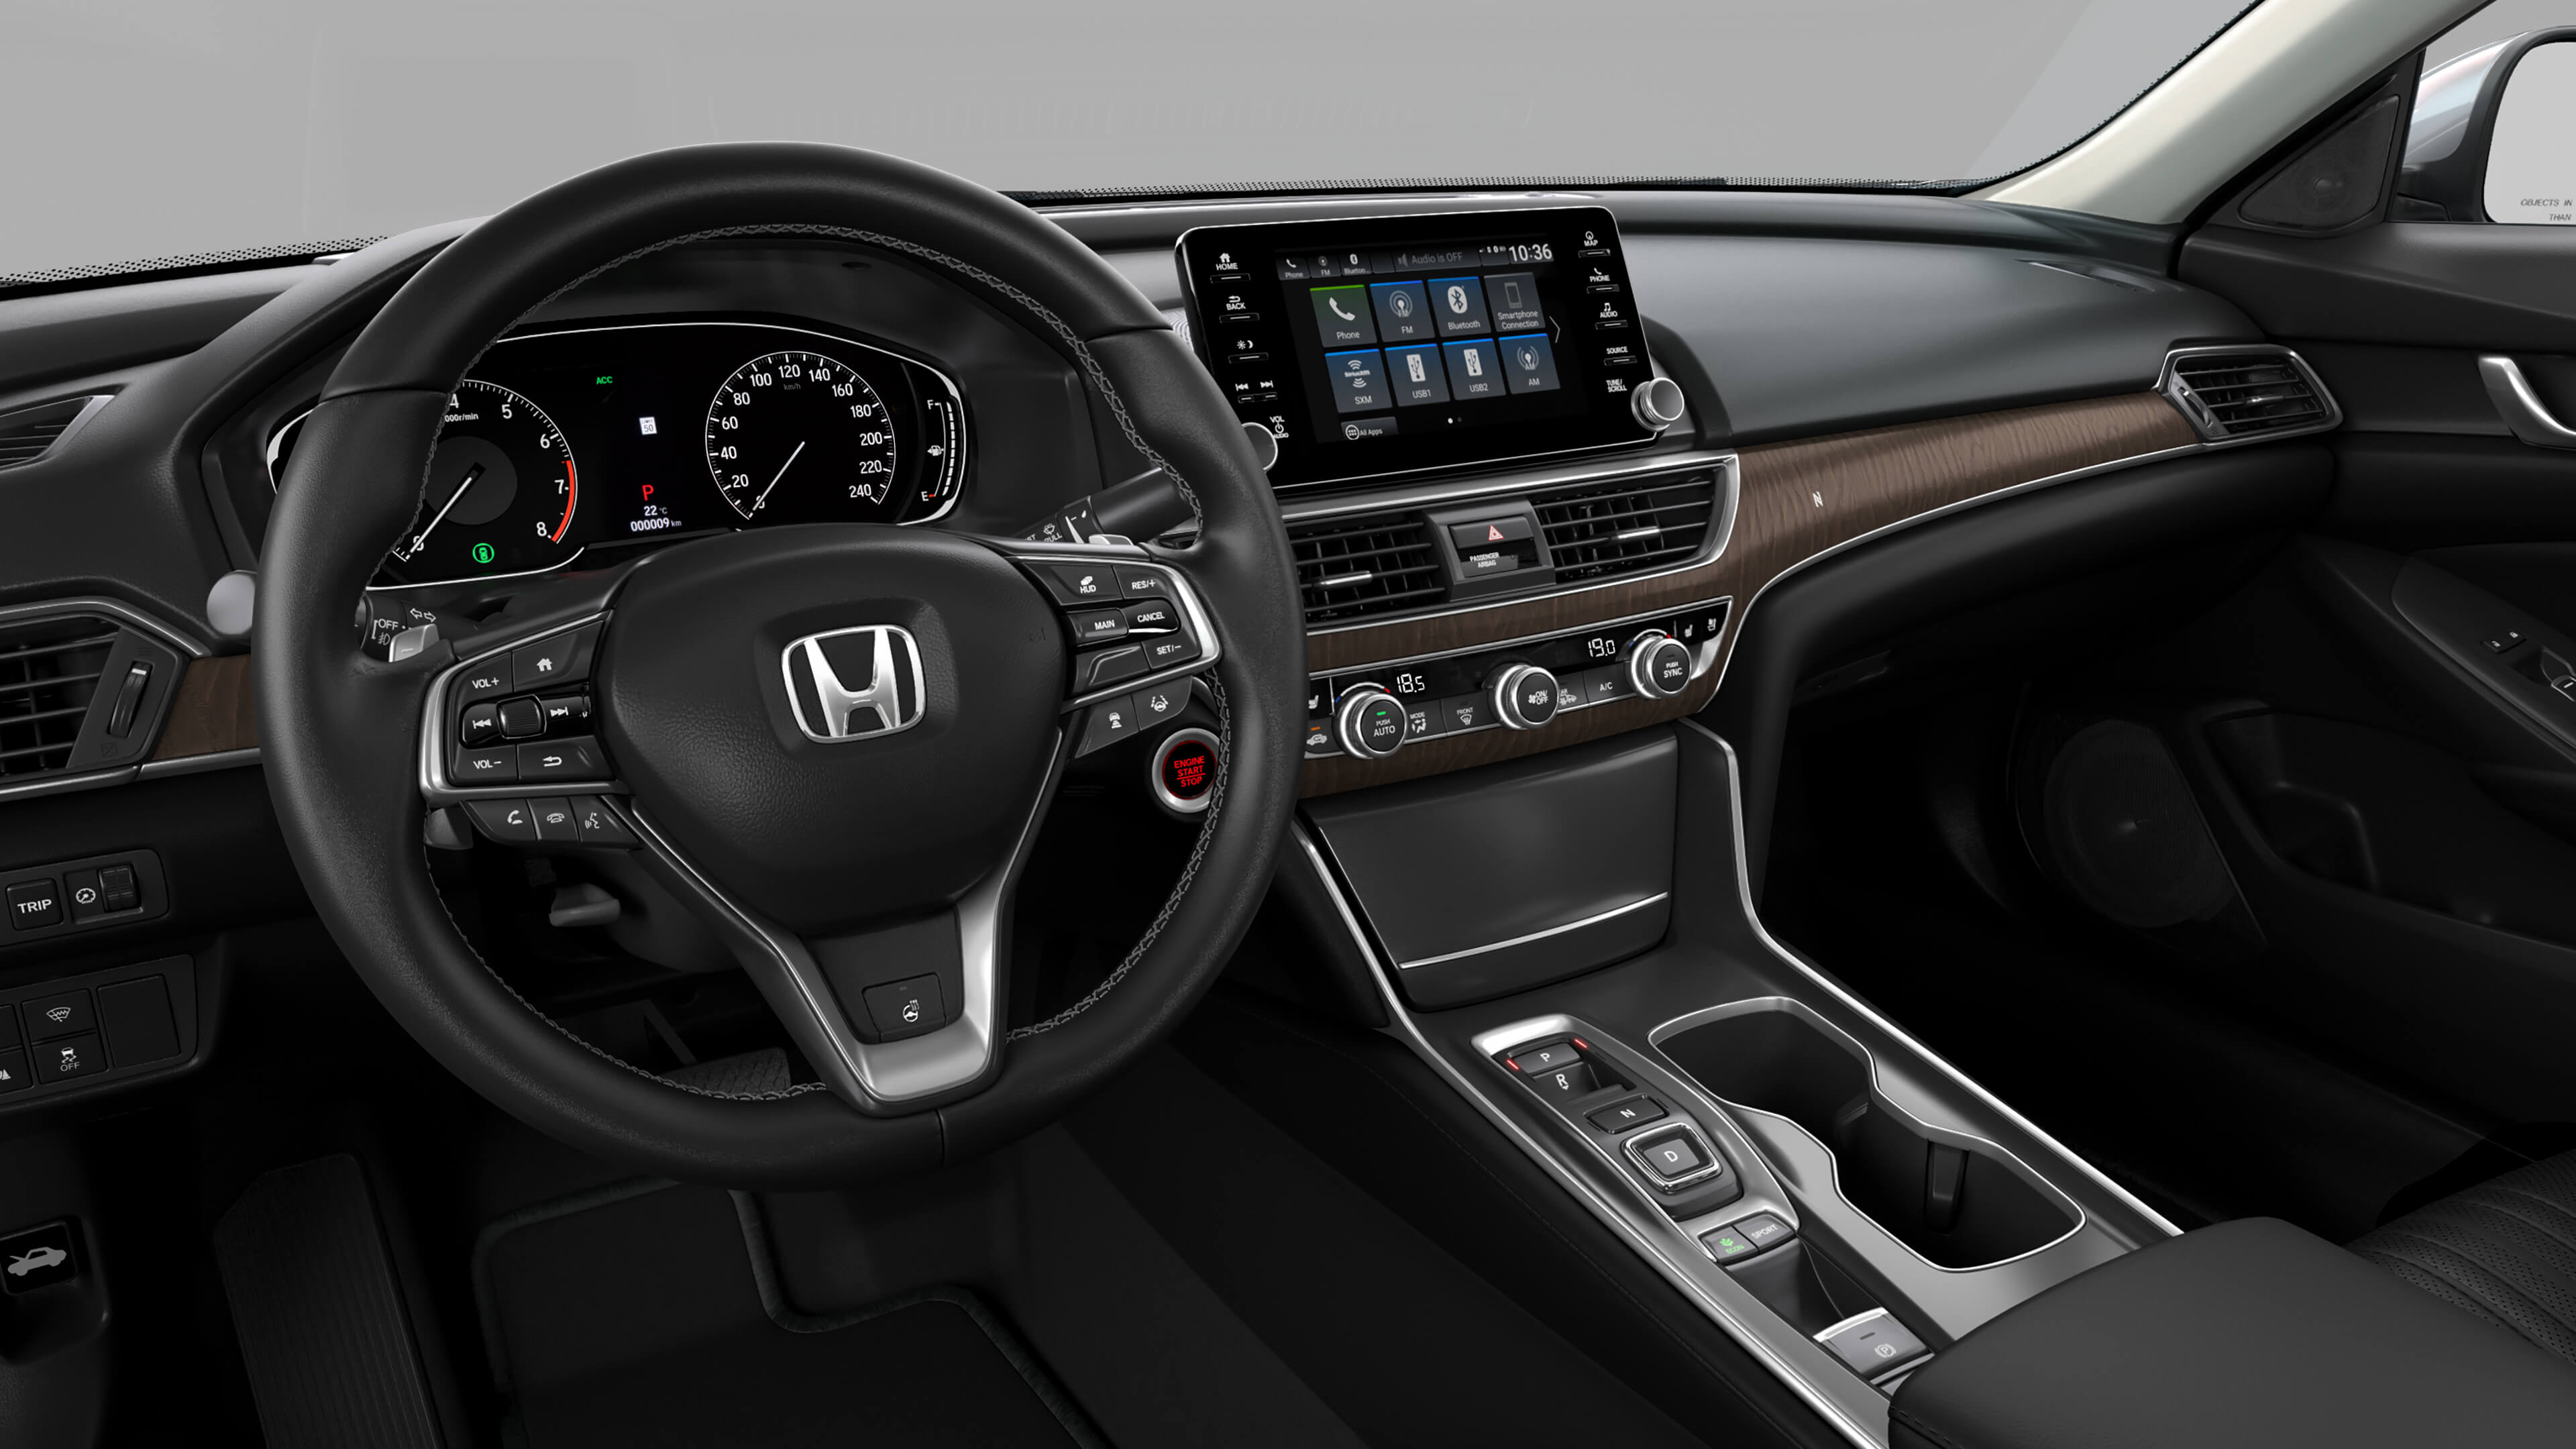 2019 Honda  Accord Features at Richmond Hill Honda in Toronto and the GTA